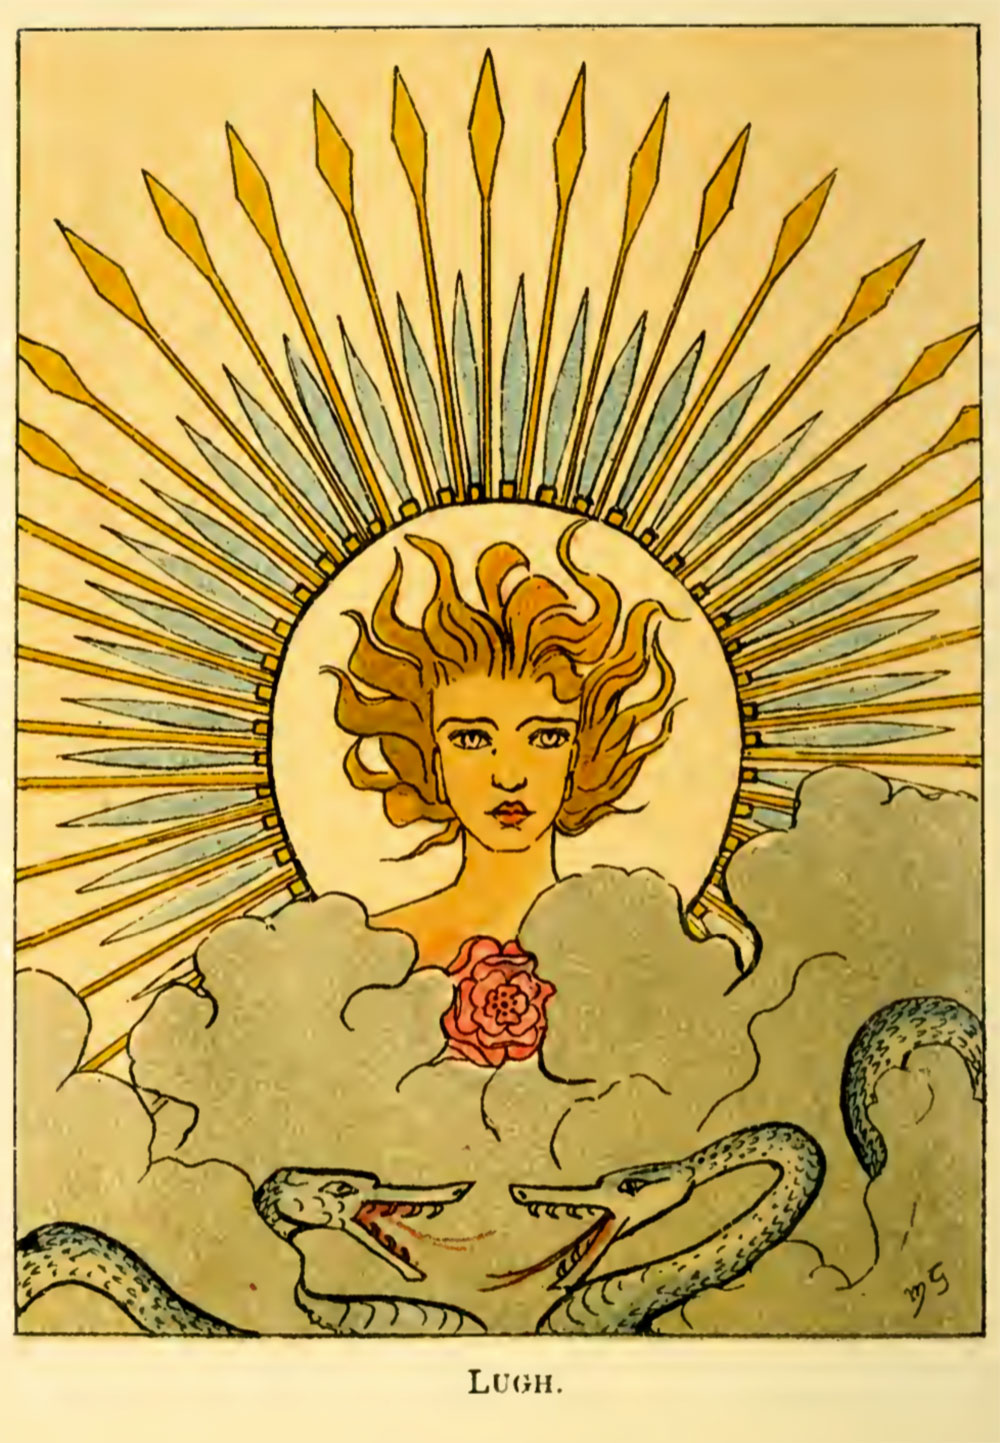 The Coming of Lugh illustrated by Maud Gonne.